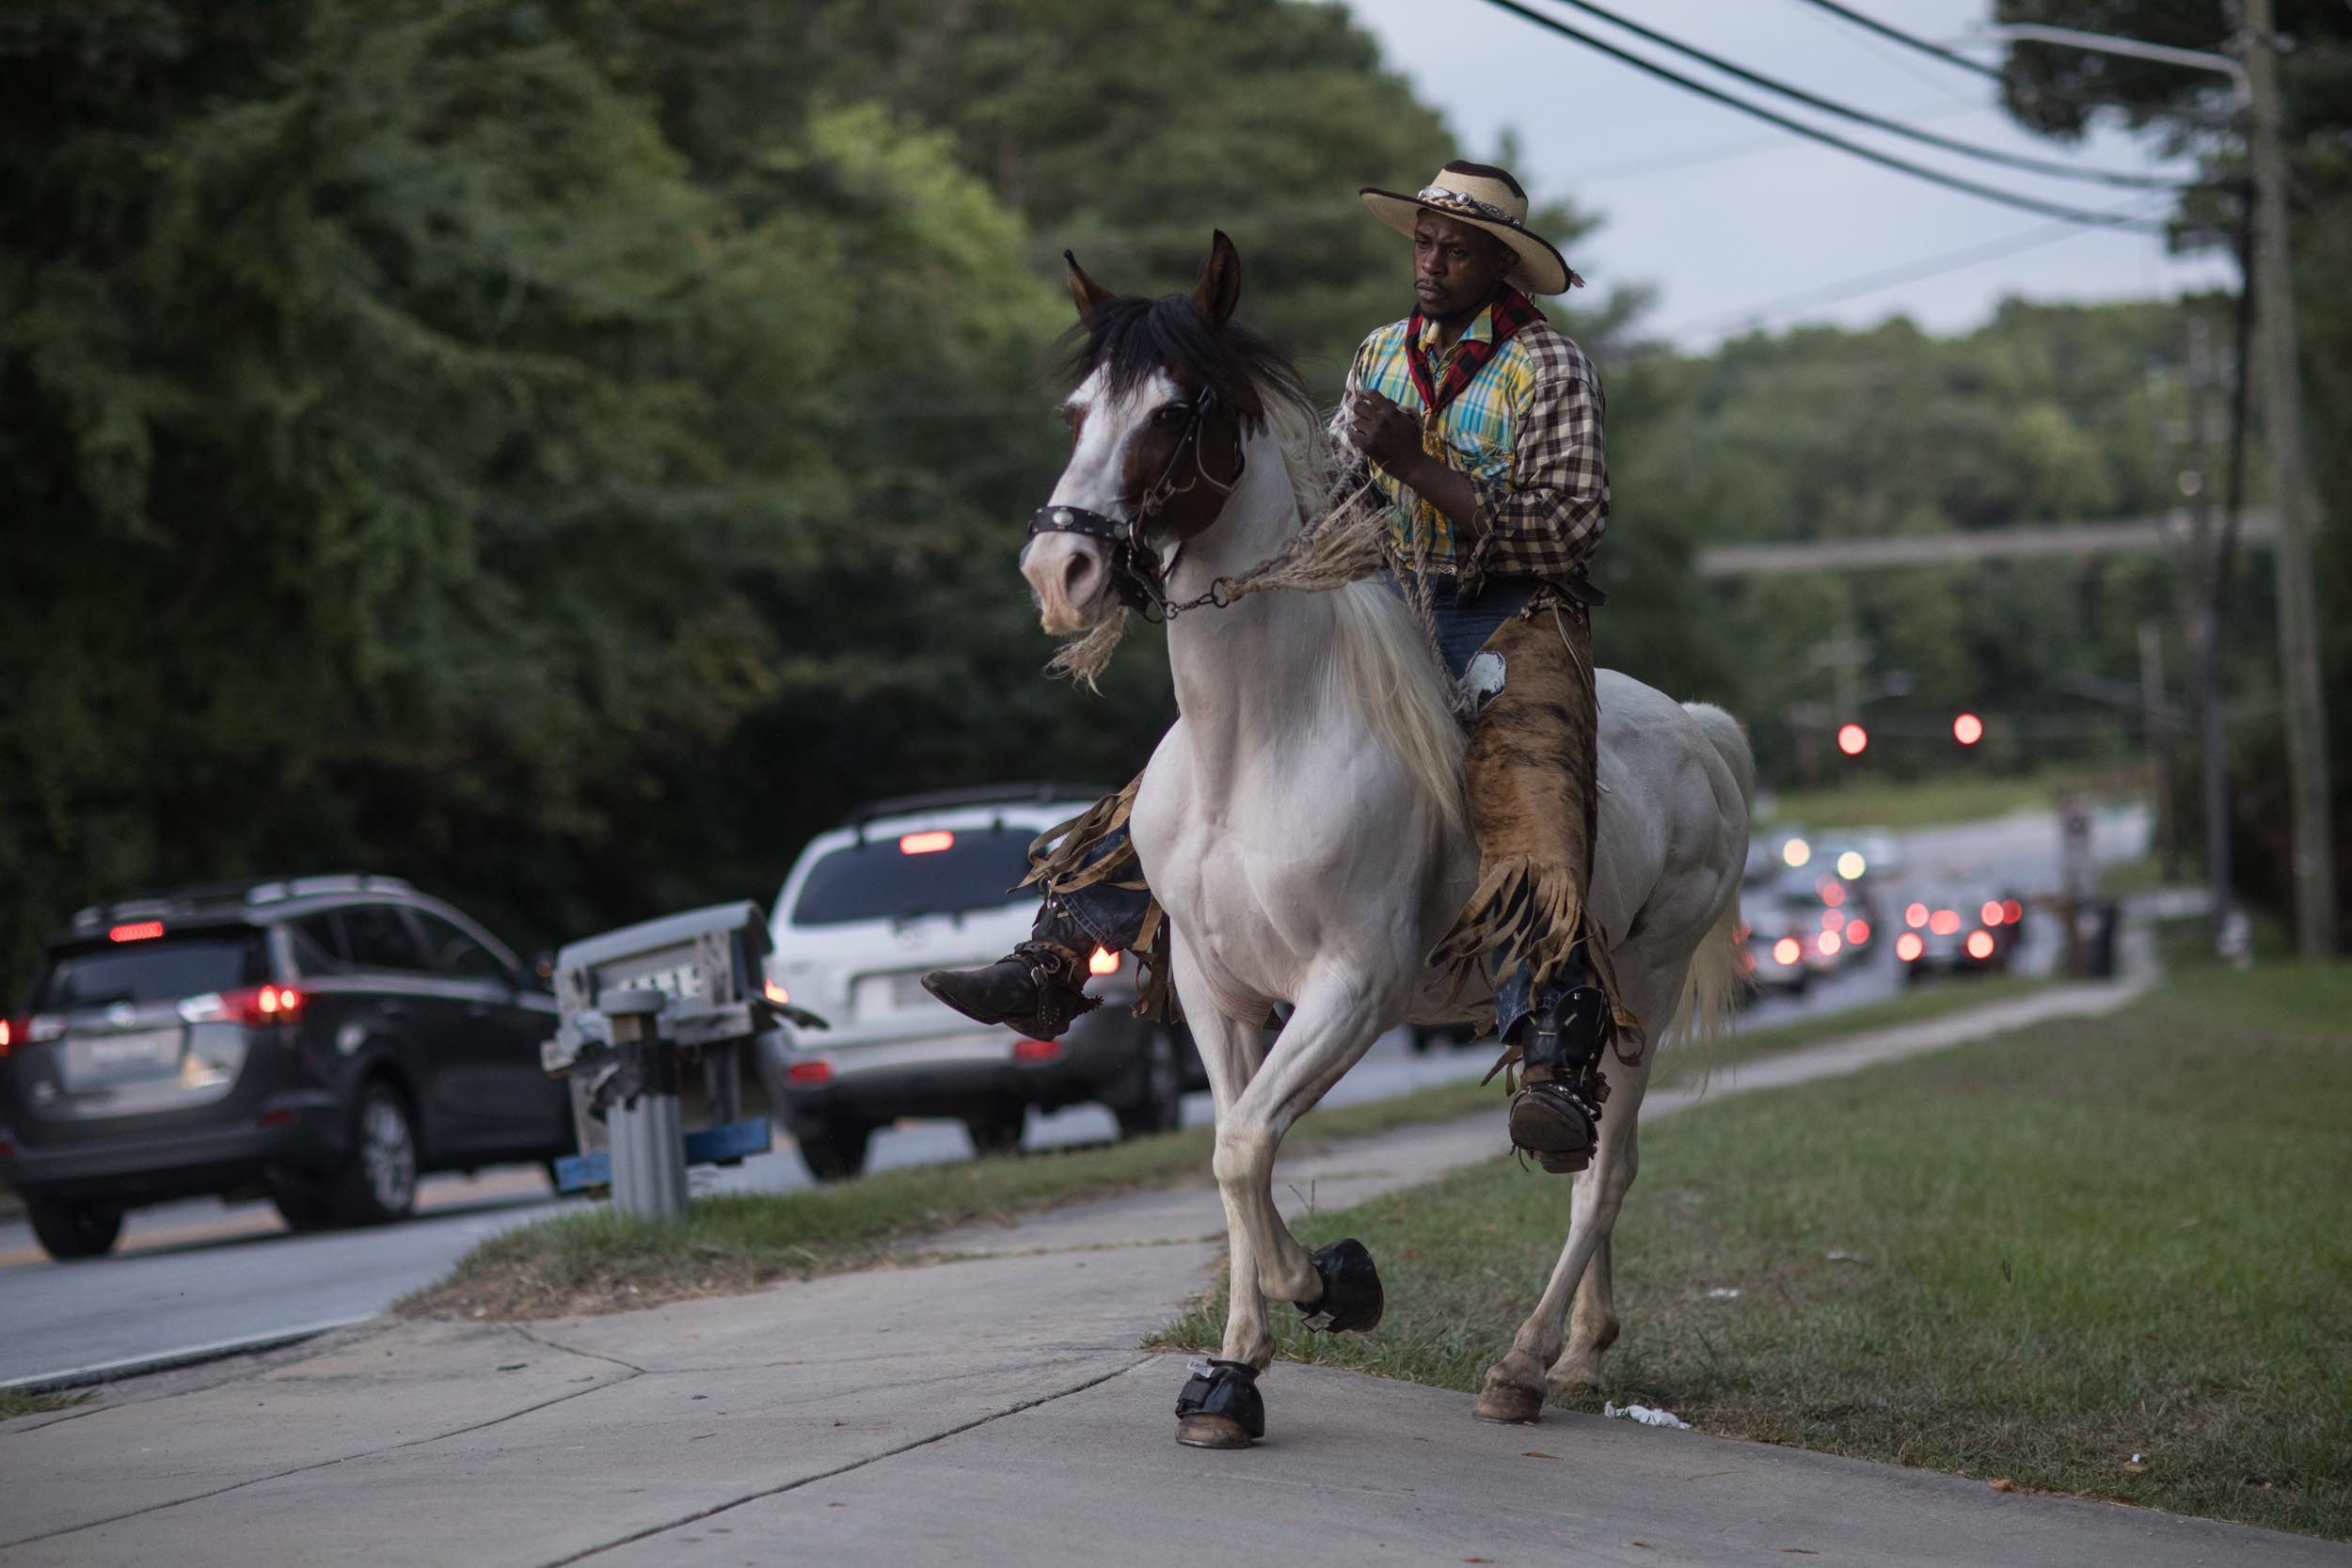 Arkansas Dave rides his horse on a ranch off of Flat Shoals Parkway, Tuesday, July 30, 2019, in Union City, Ga. Branden Camp for AJC